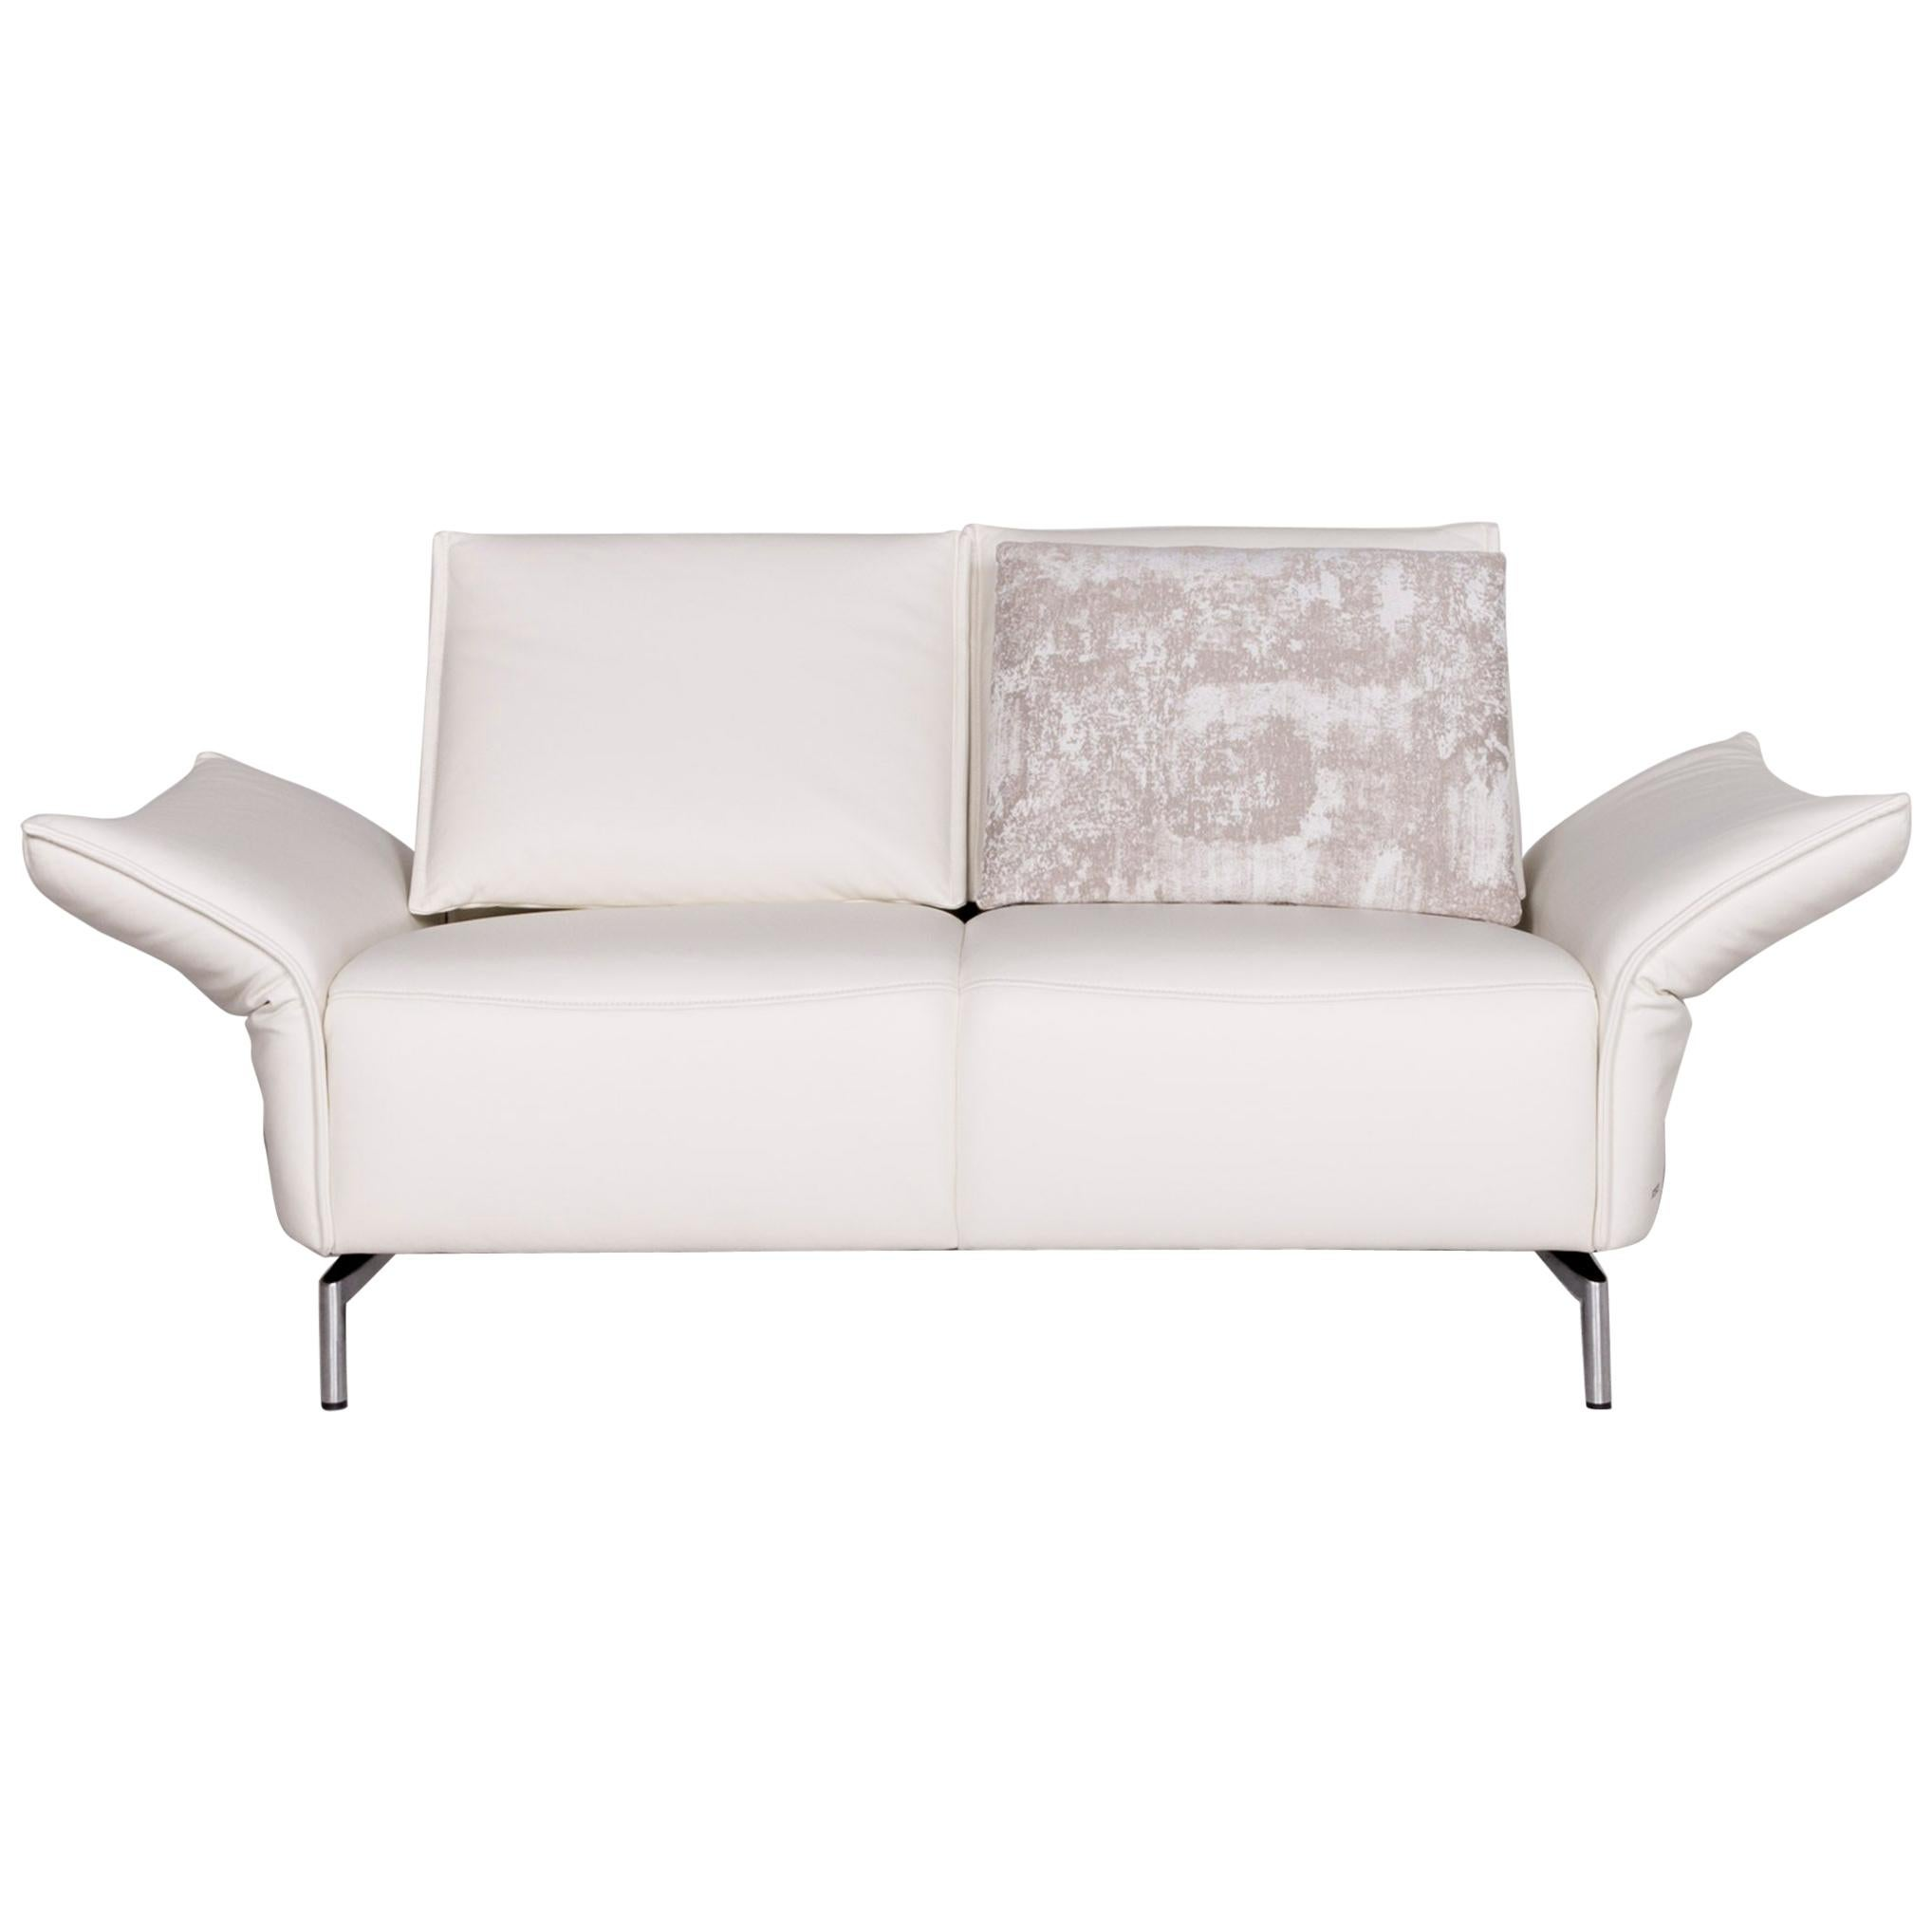 Koinor Vanda Koinor Vanda Designer Leather Sofa White Real Leather Two